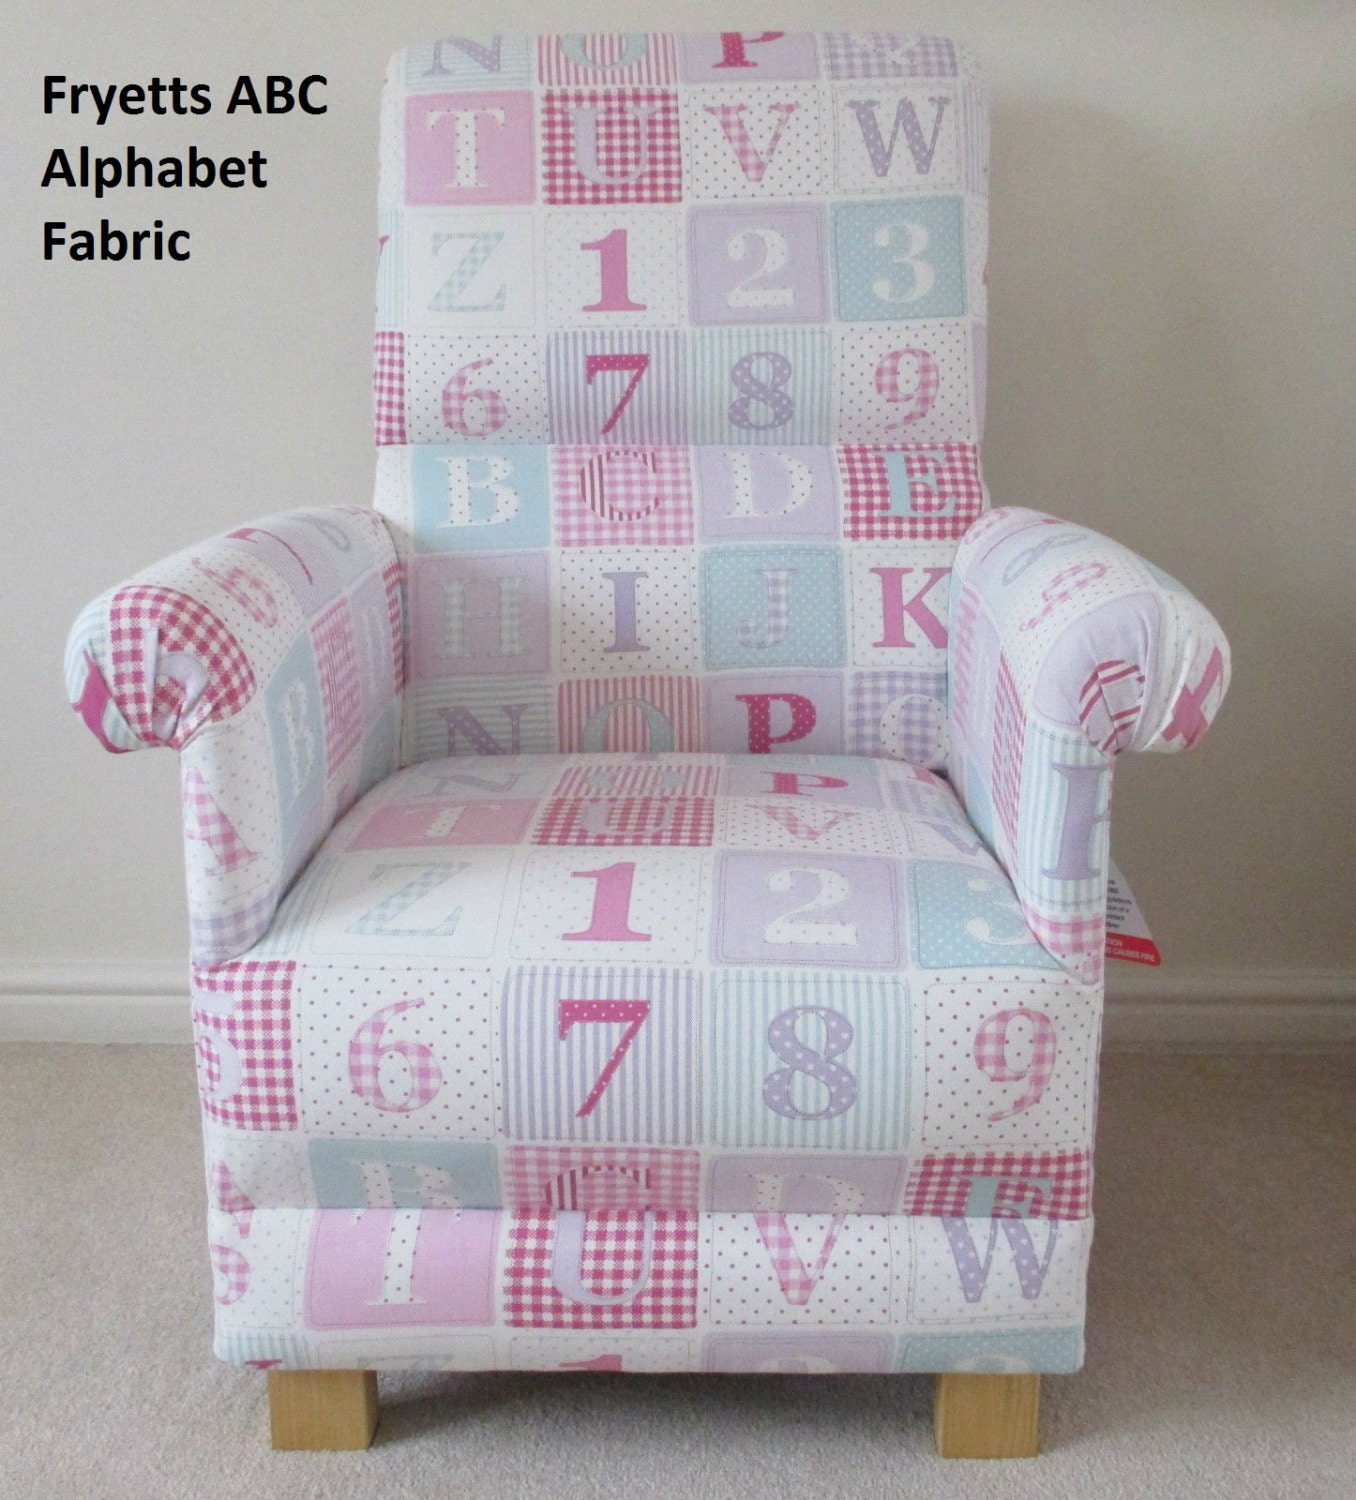 Fryetts Alphabet Pink Fabric Adult Chair Nursery ABC Patchwork Green Gingham Bedroom Shabby Chic Bespoke Handcrafted